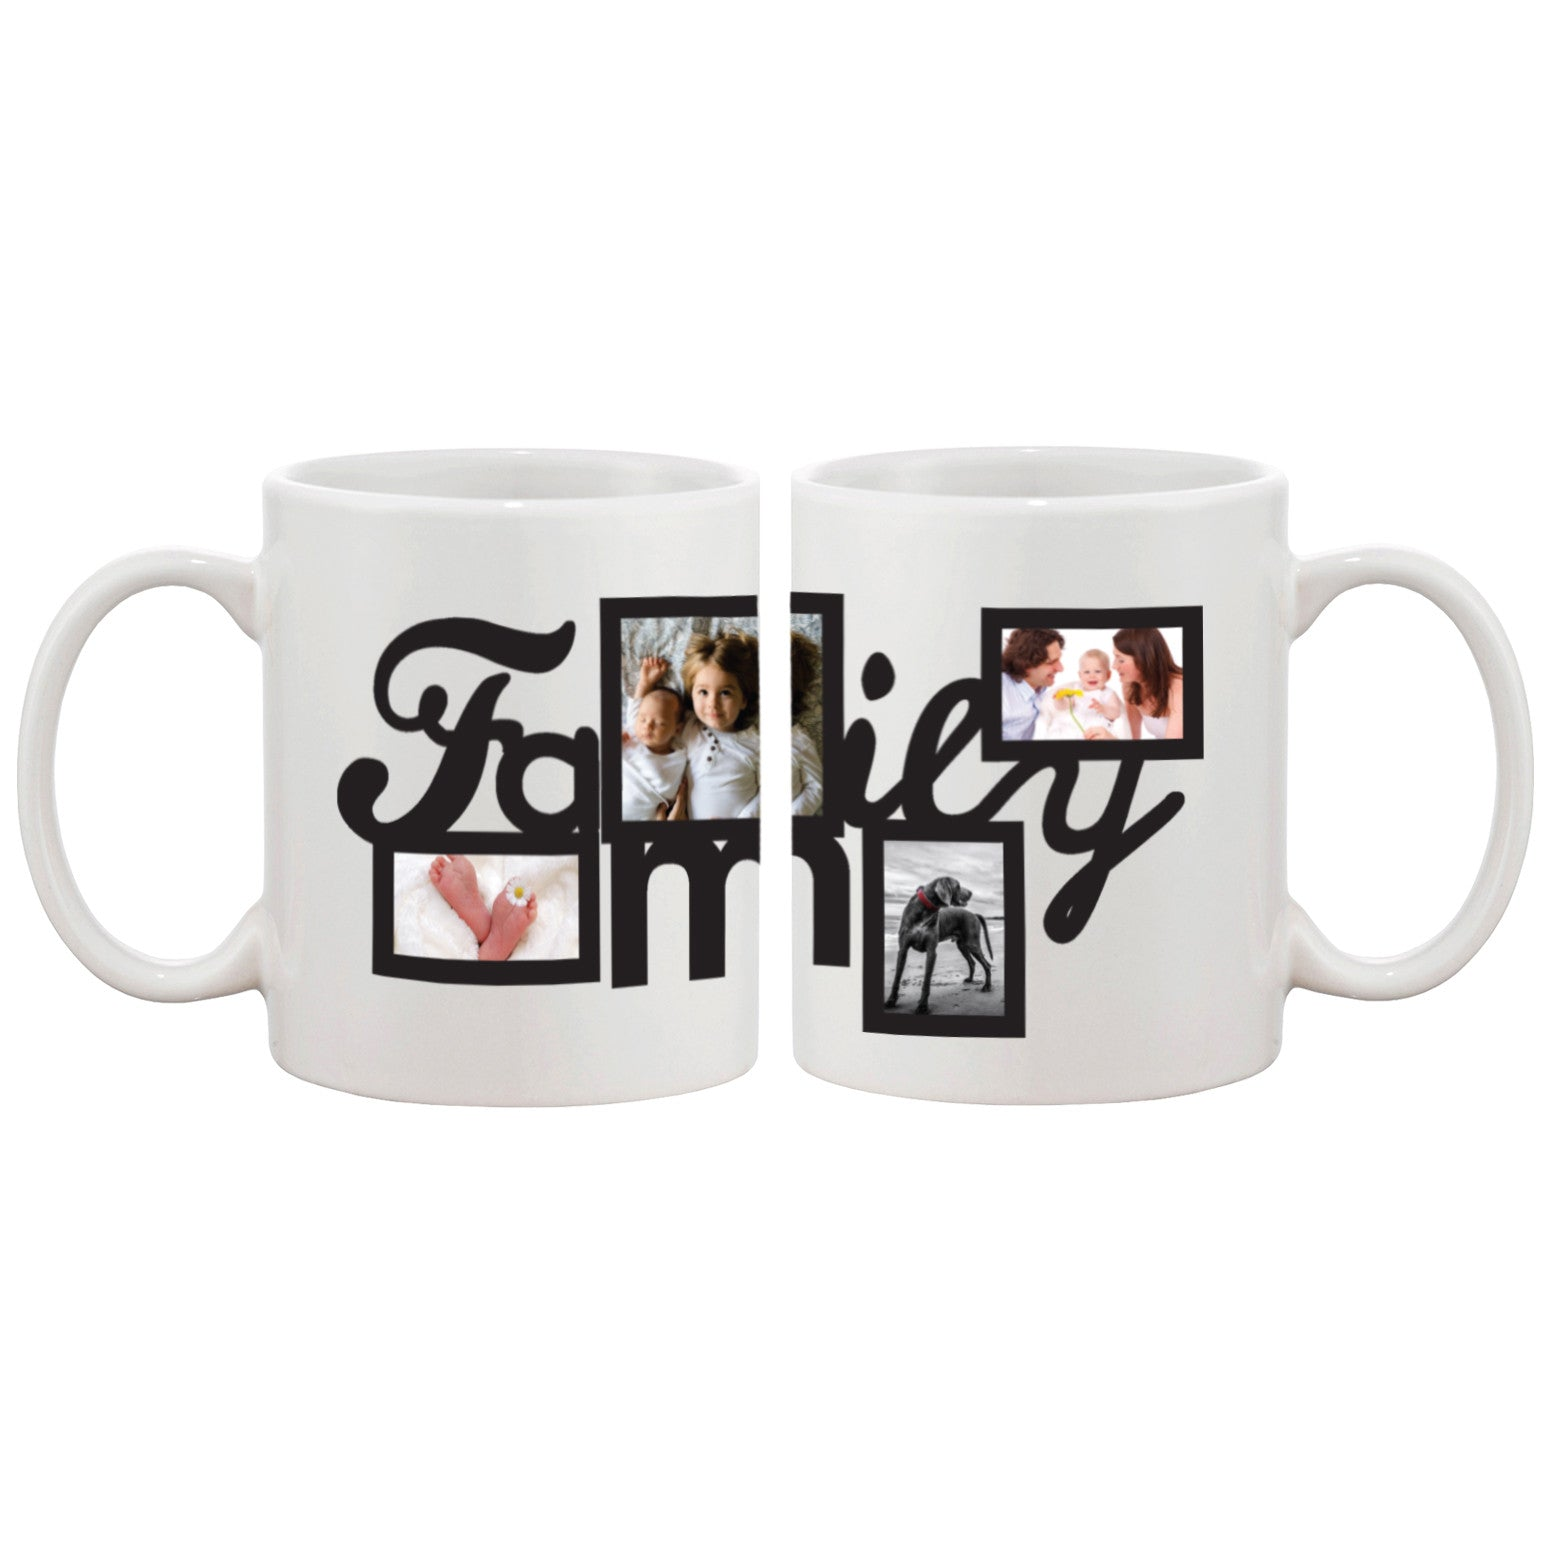 80bb0fdc4a8 Personalized Coffee Mug For your Own Four Pictures Best Gift ideas for  Family Custom Mug